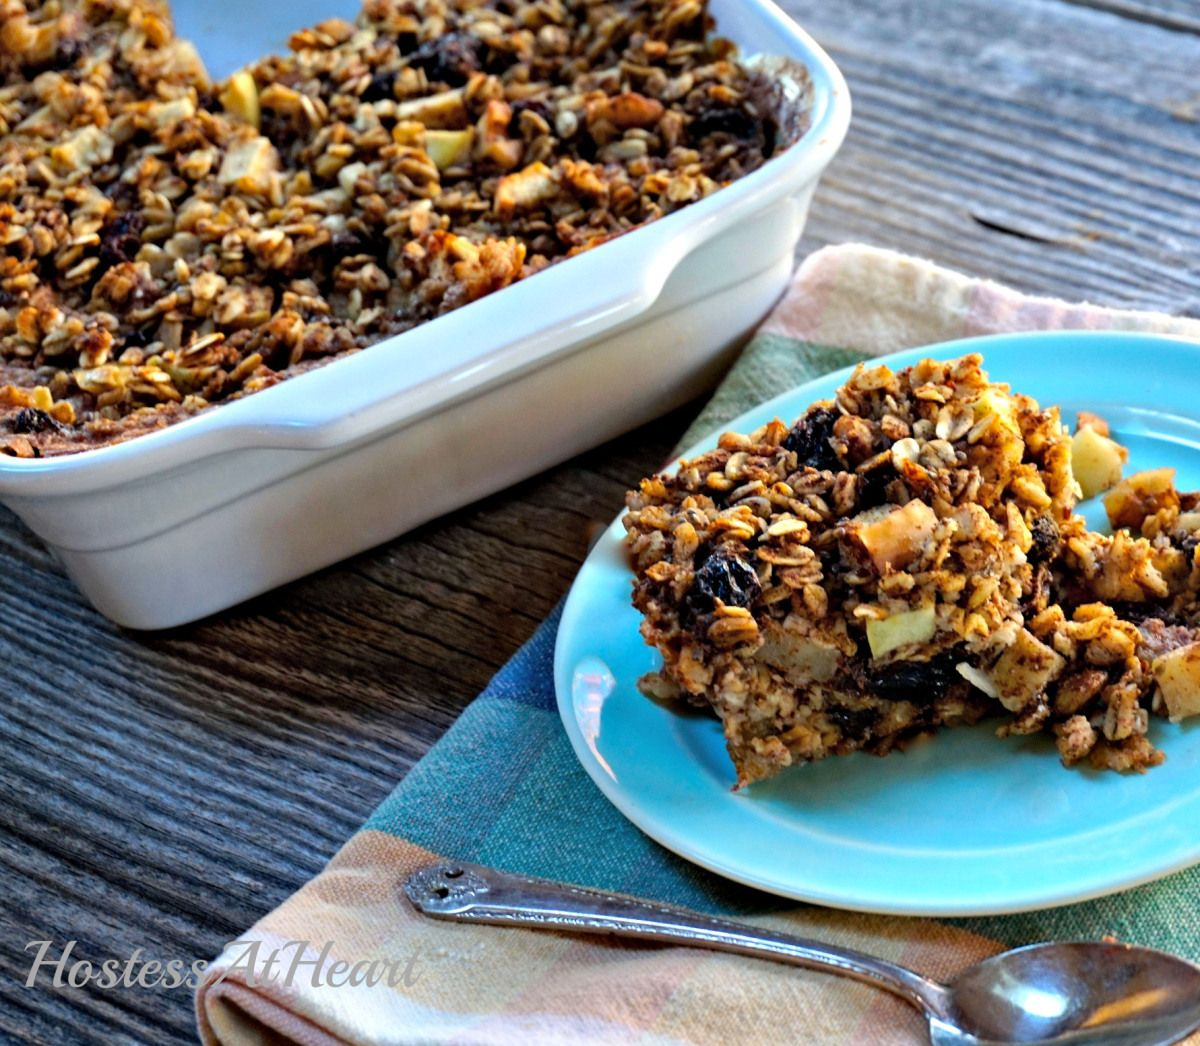 A warm flavorful oatmeal dish that will warm your bones. HostessAtHeart